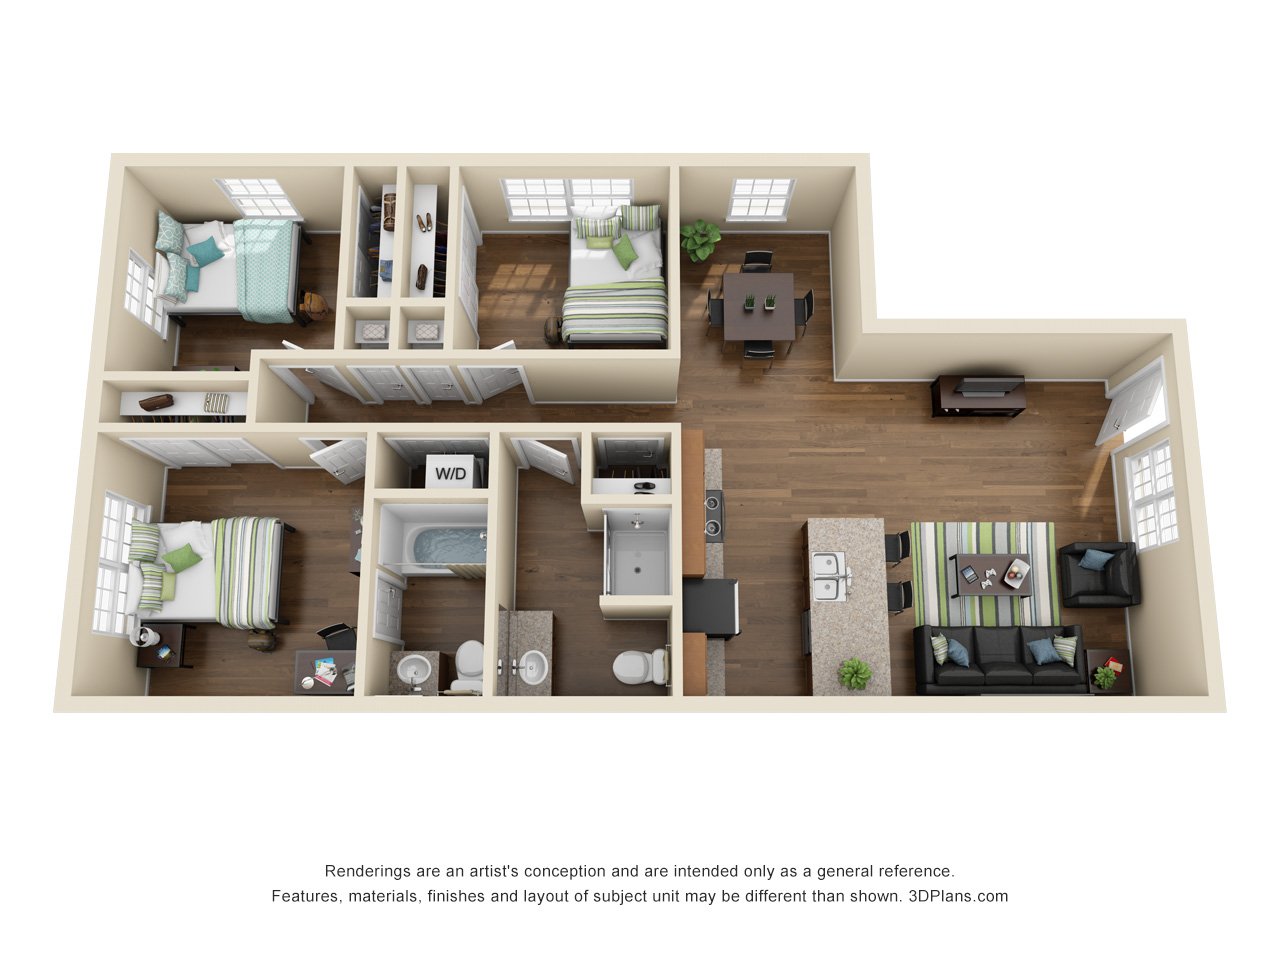 apartment 3 bedroom. 3 2 vattier  Limited quantity Bedroom Bath Apartment Kansas State University Apartments Bed Vattier